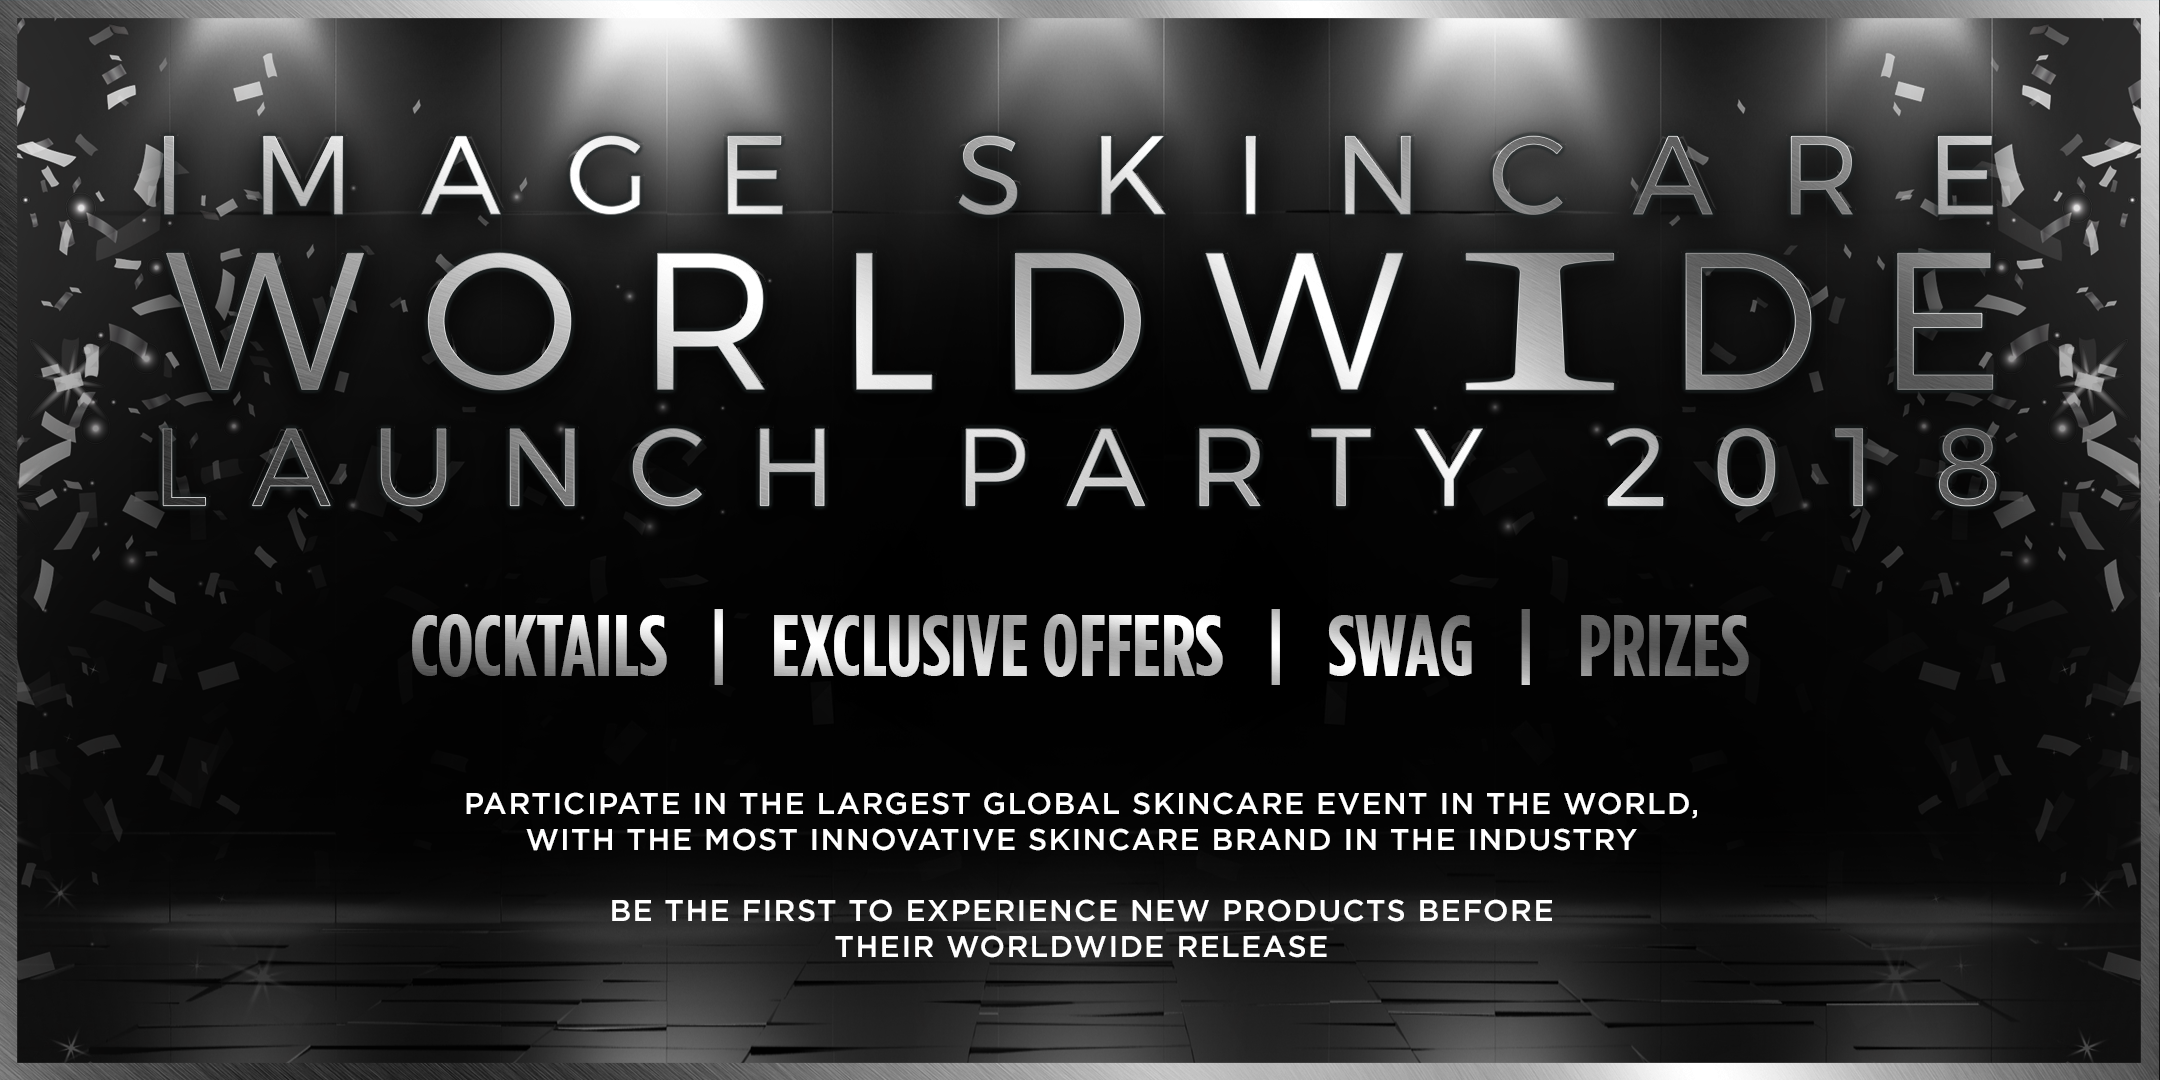 IMAGE SKINCARE WORLDWIDE LAUNCH PARTY 2018 - Columbia, SC